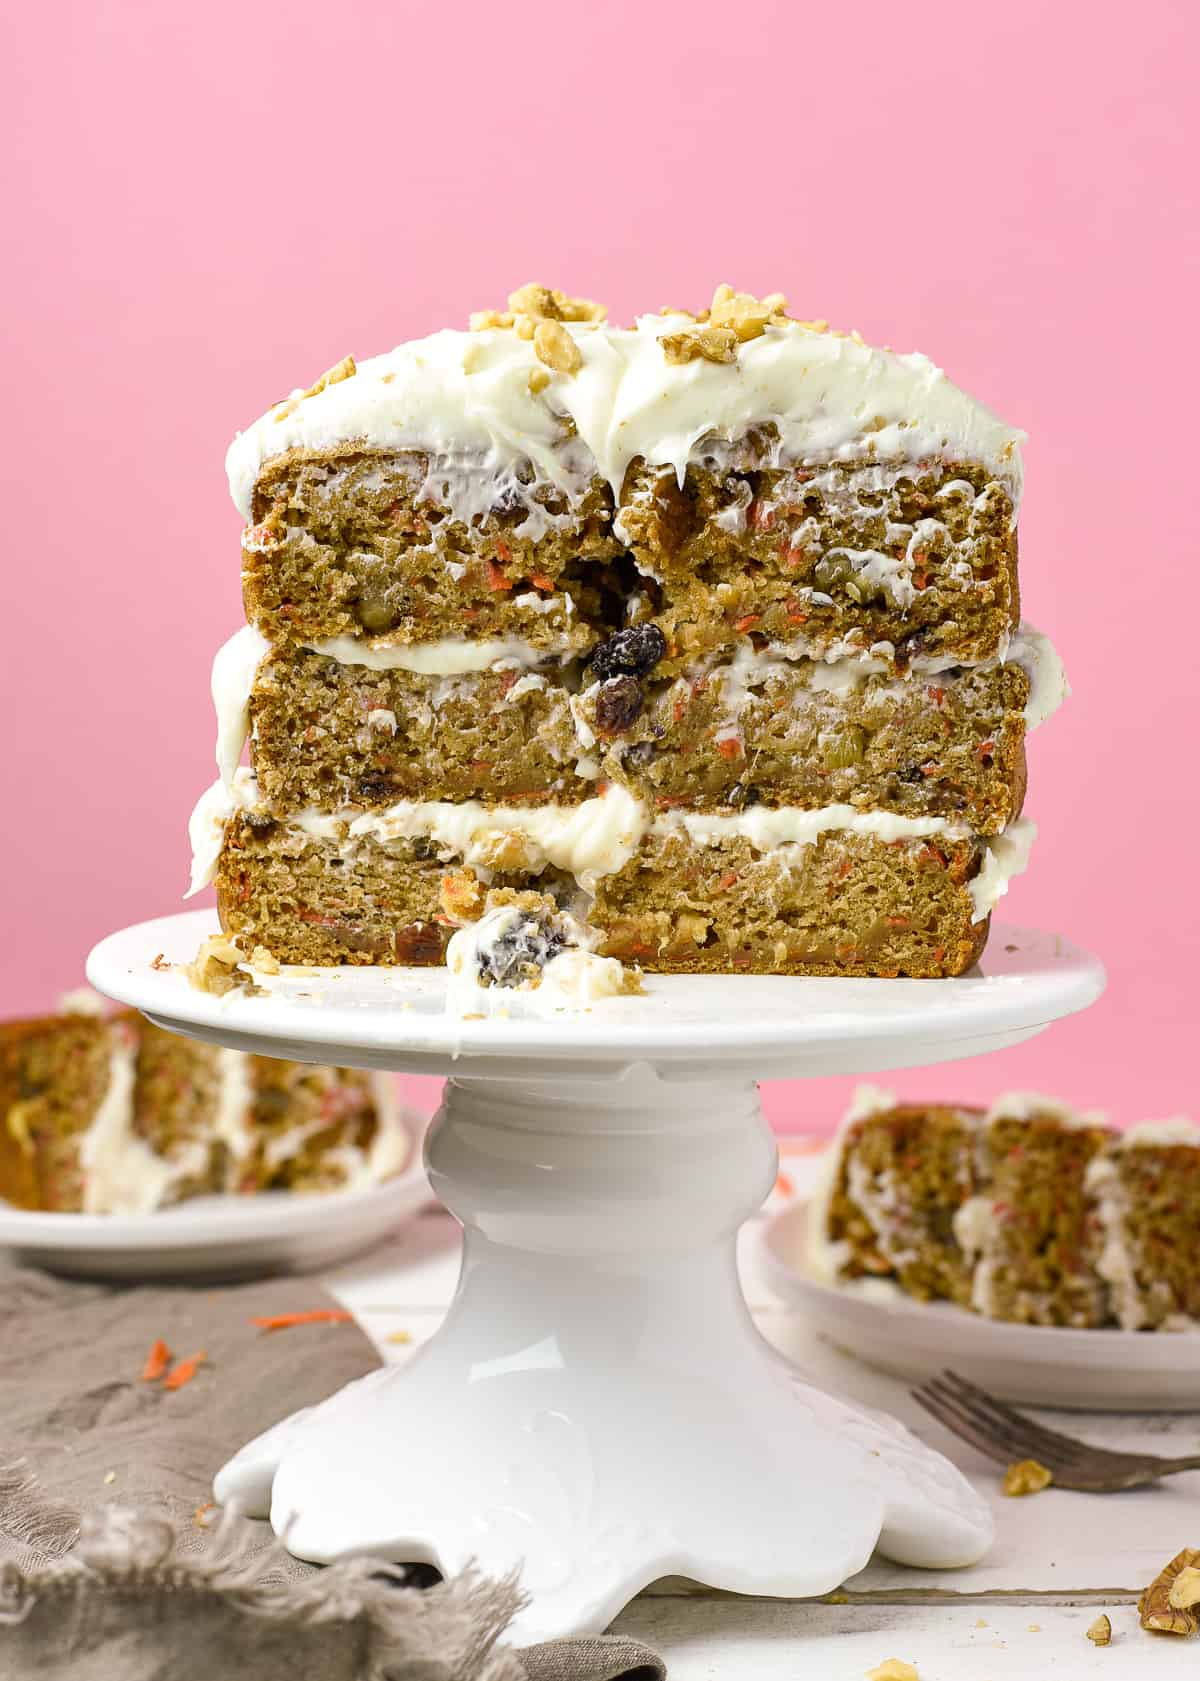 sliced vegan carrot cake on cake stand with a pink background